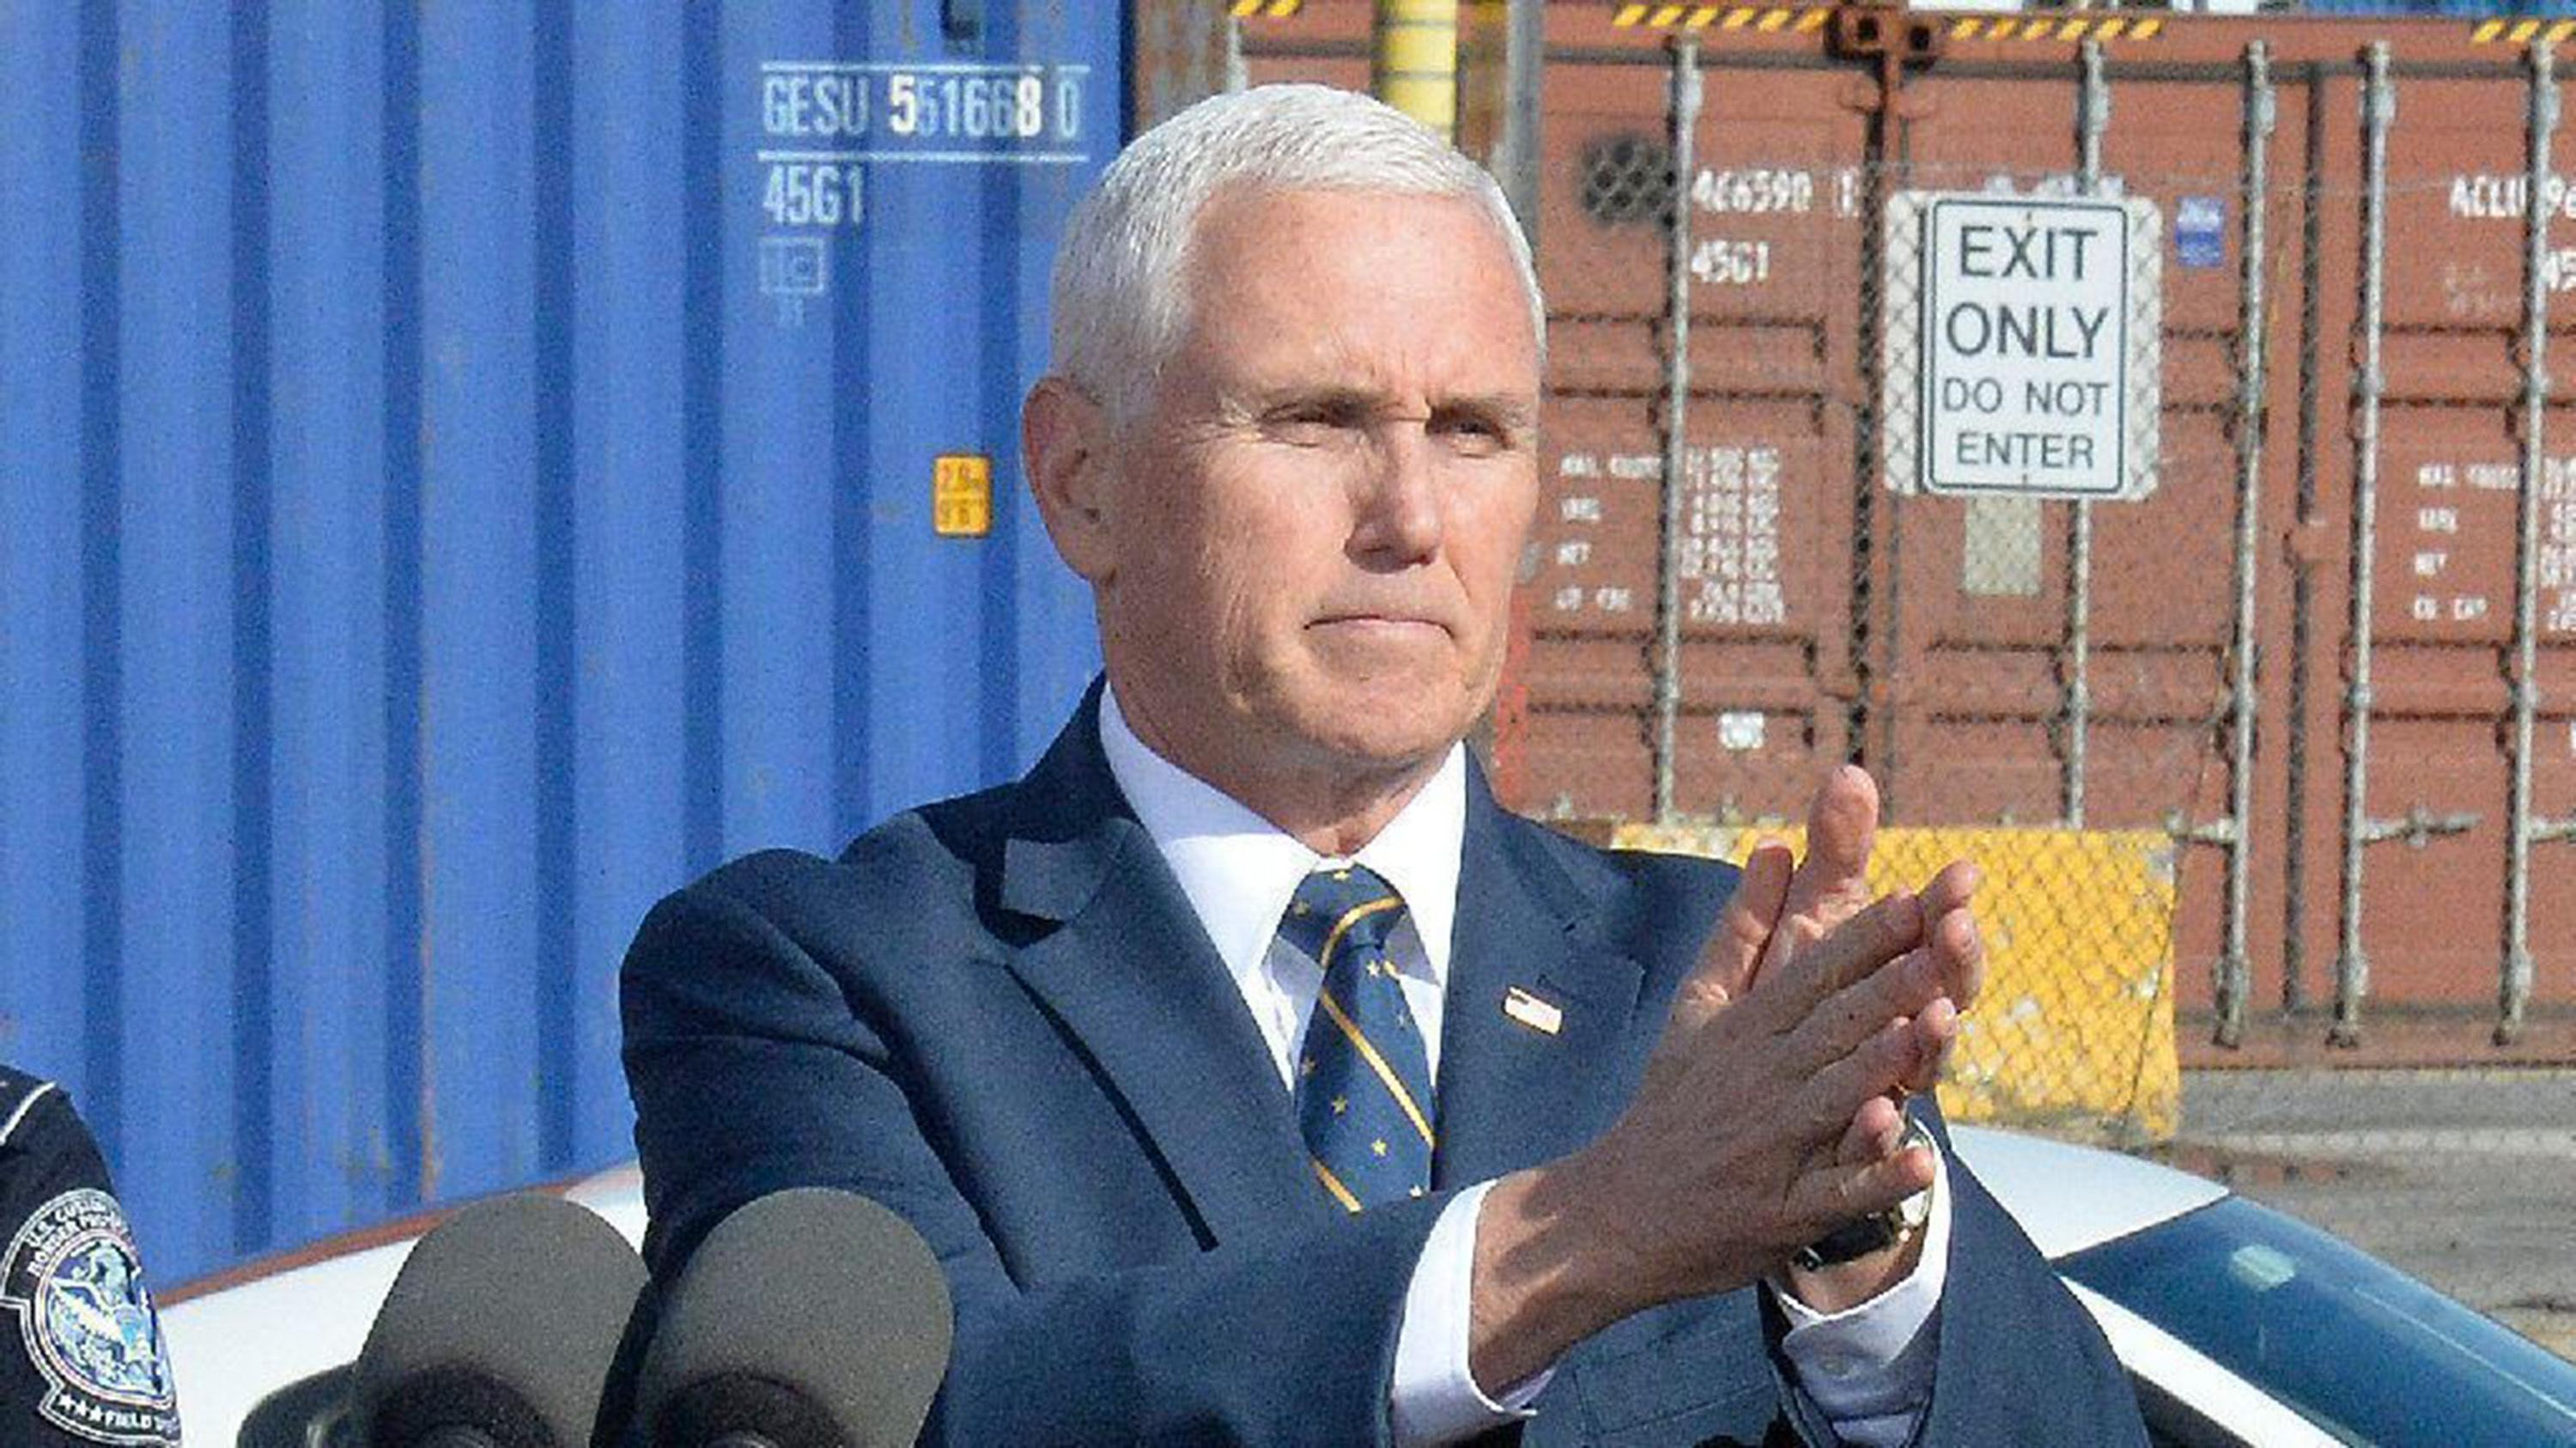 Pence to address GOP convention from Fort McHenry in Baltimore, a city Trump has scorned